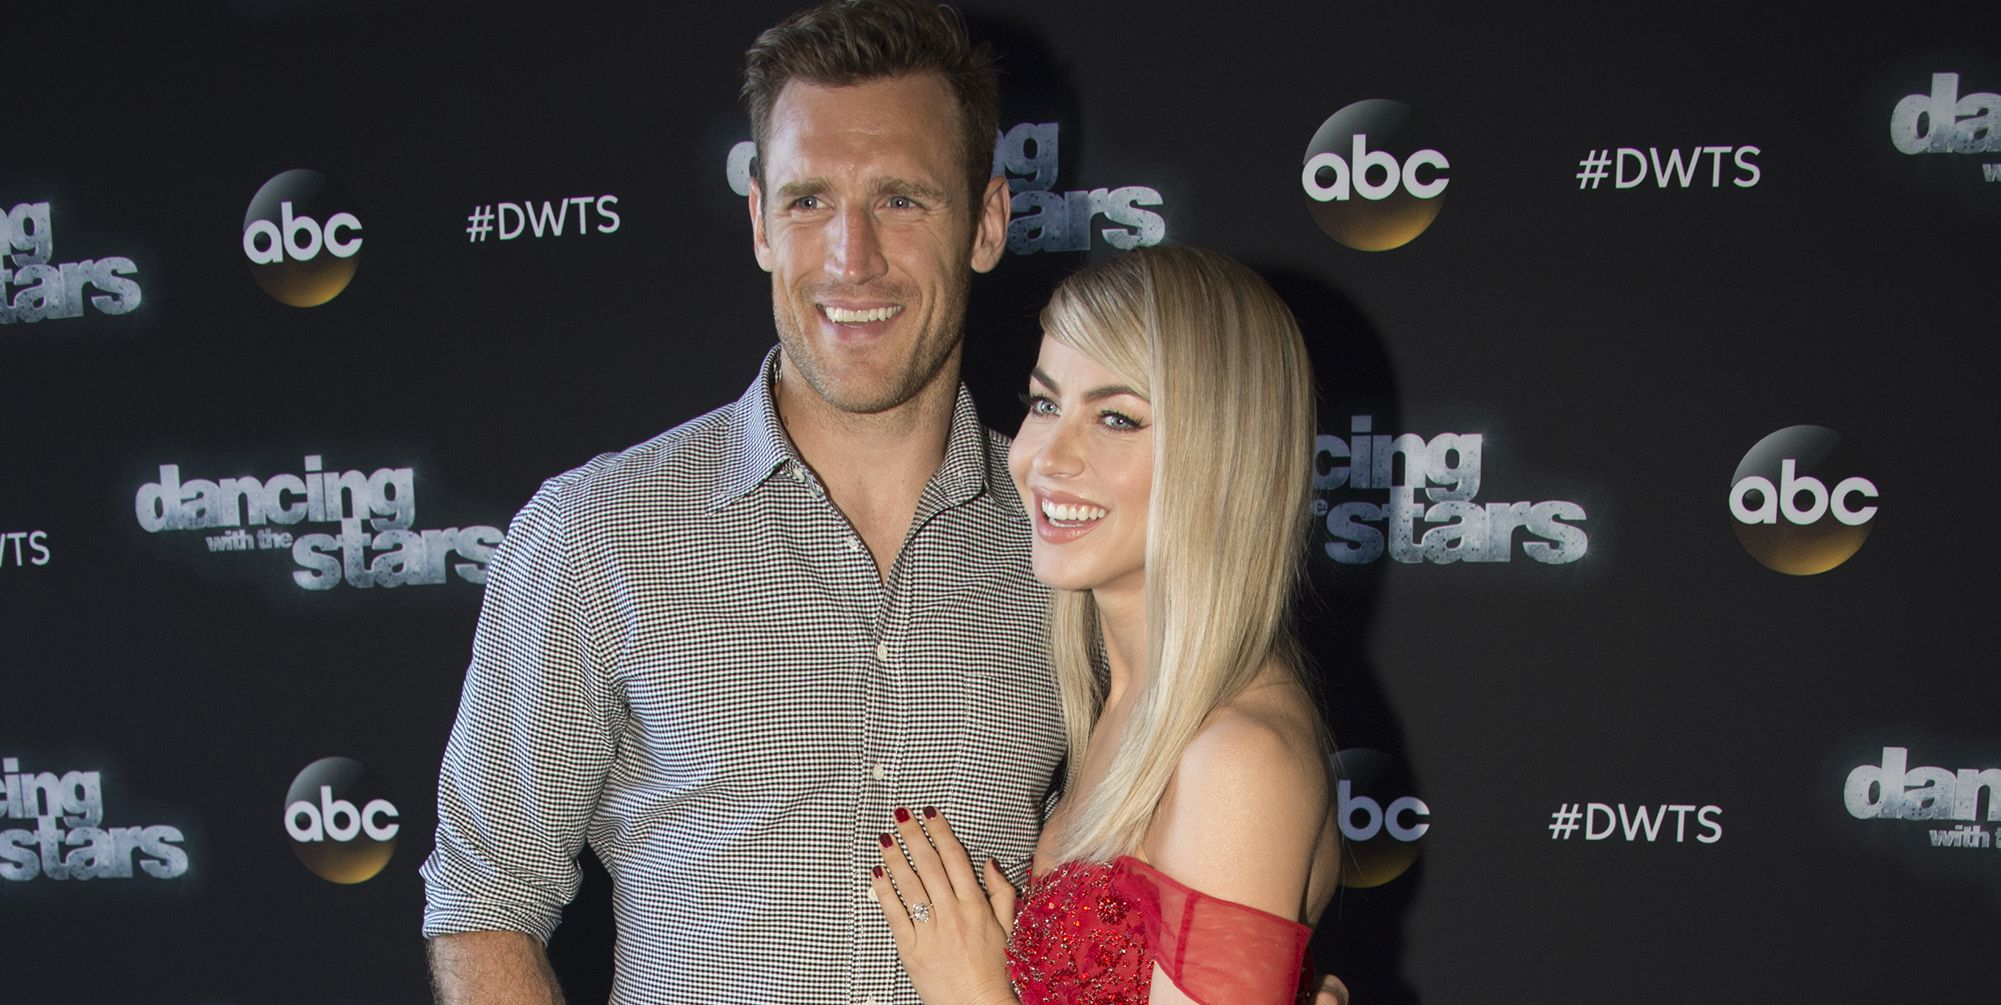 Congrats to Julianne Hough and her New NHL Hubby